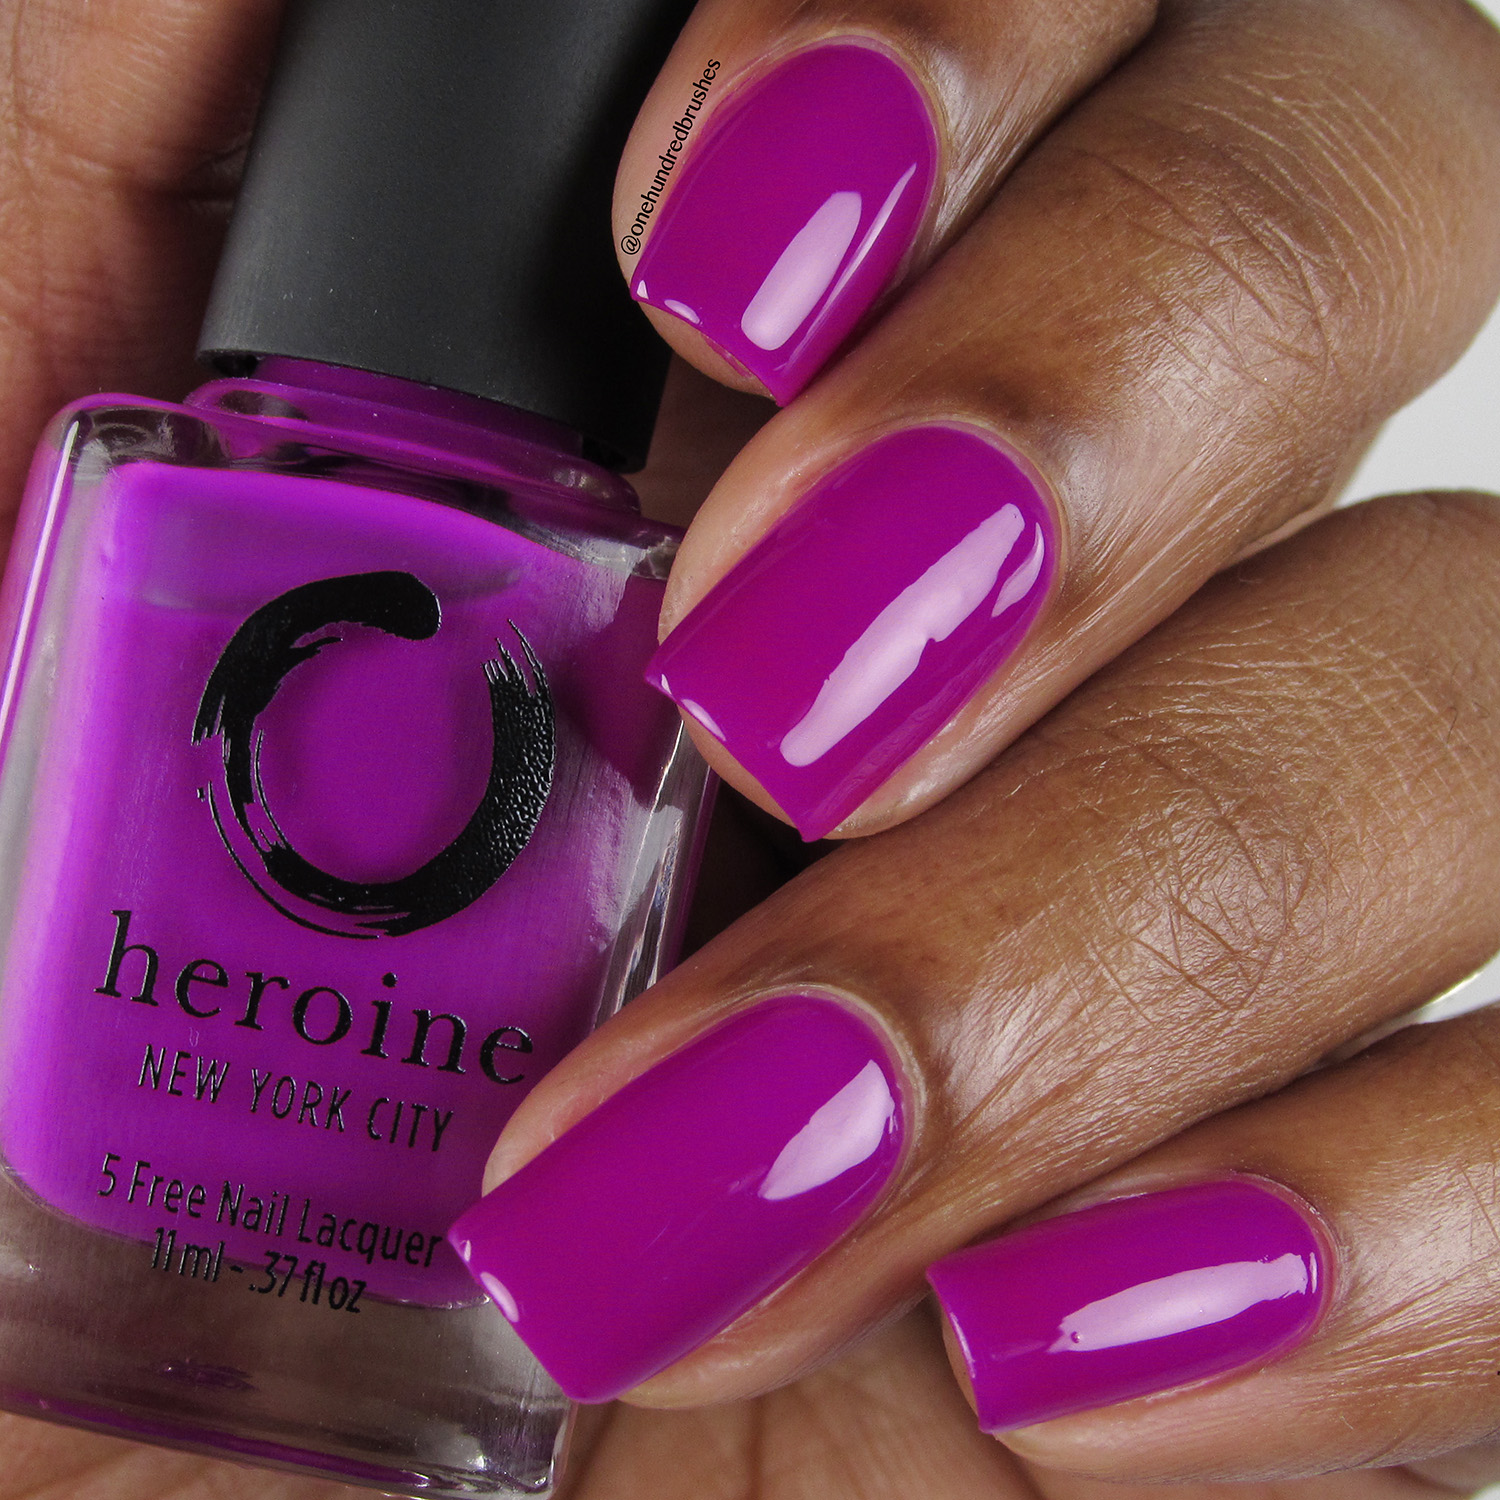 Touch-Me-Not - Bottle Front - Heroine NYC - The Neons - purple